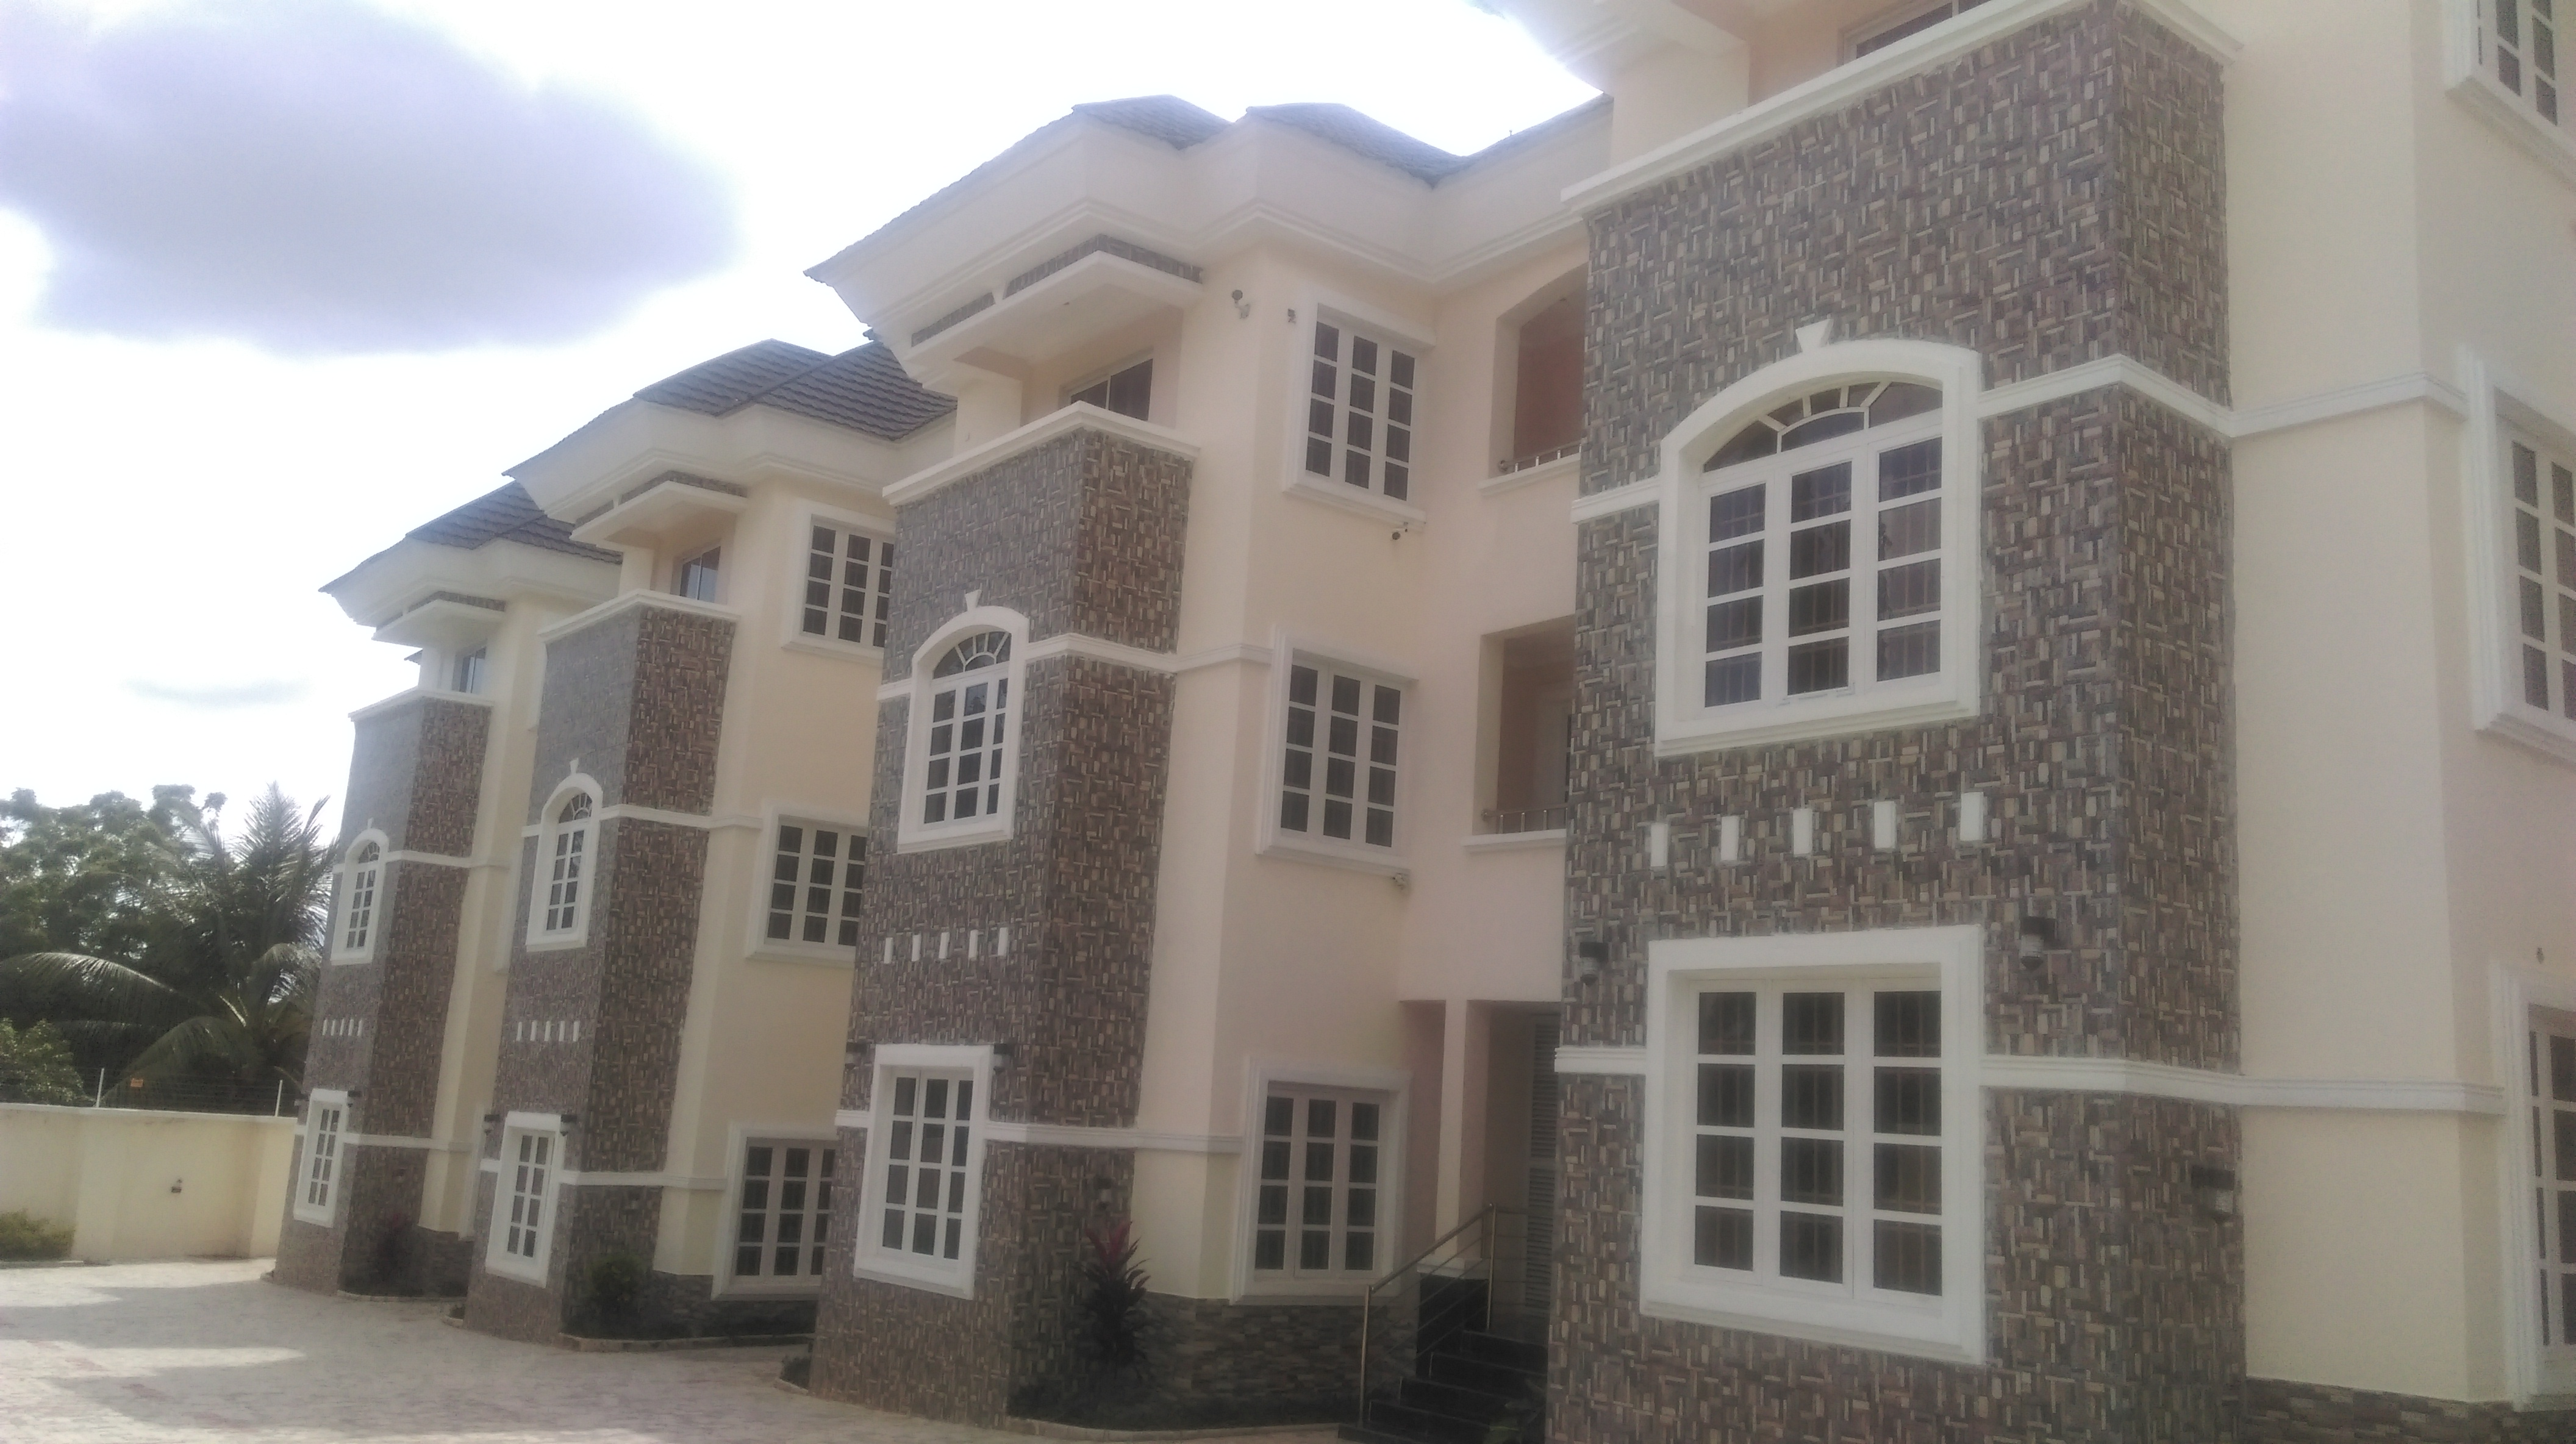 5 units of 4 bedroom duplex for rent abuja properties for Duplex units